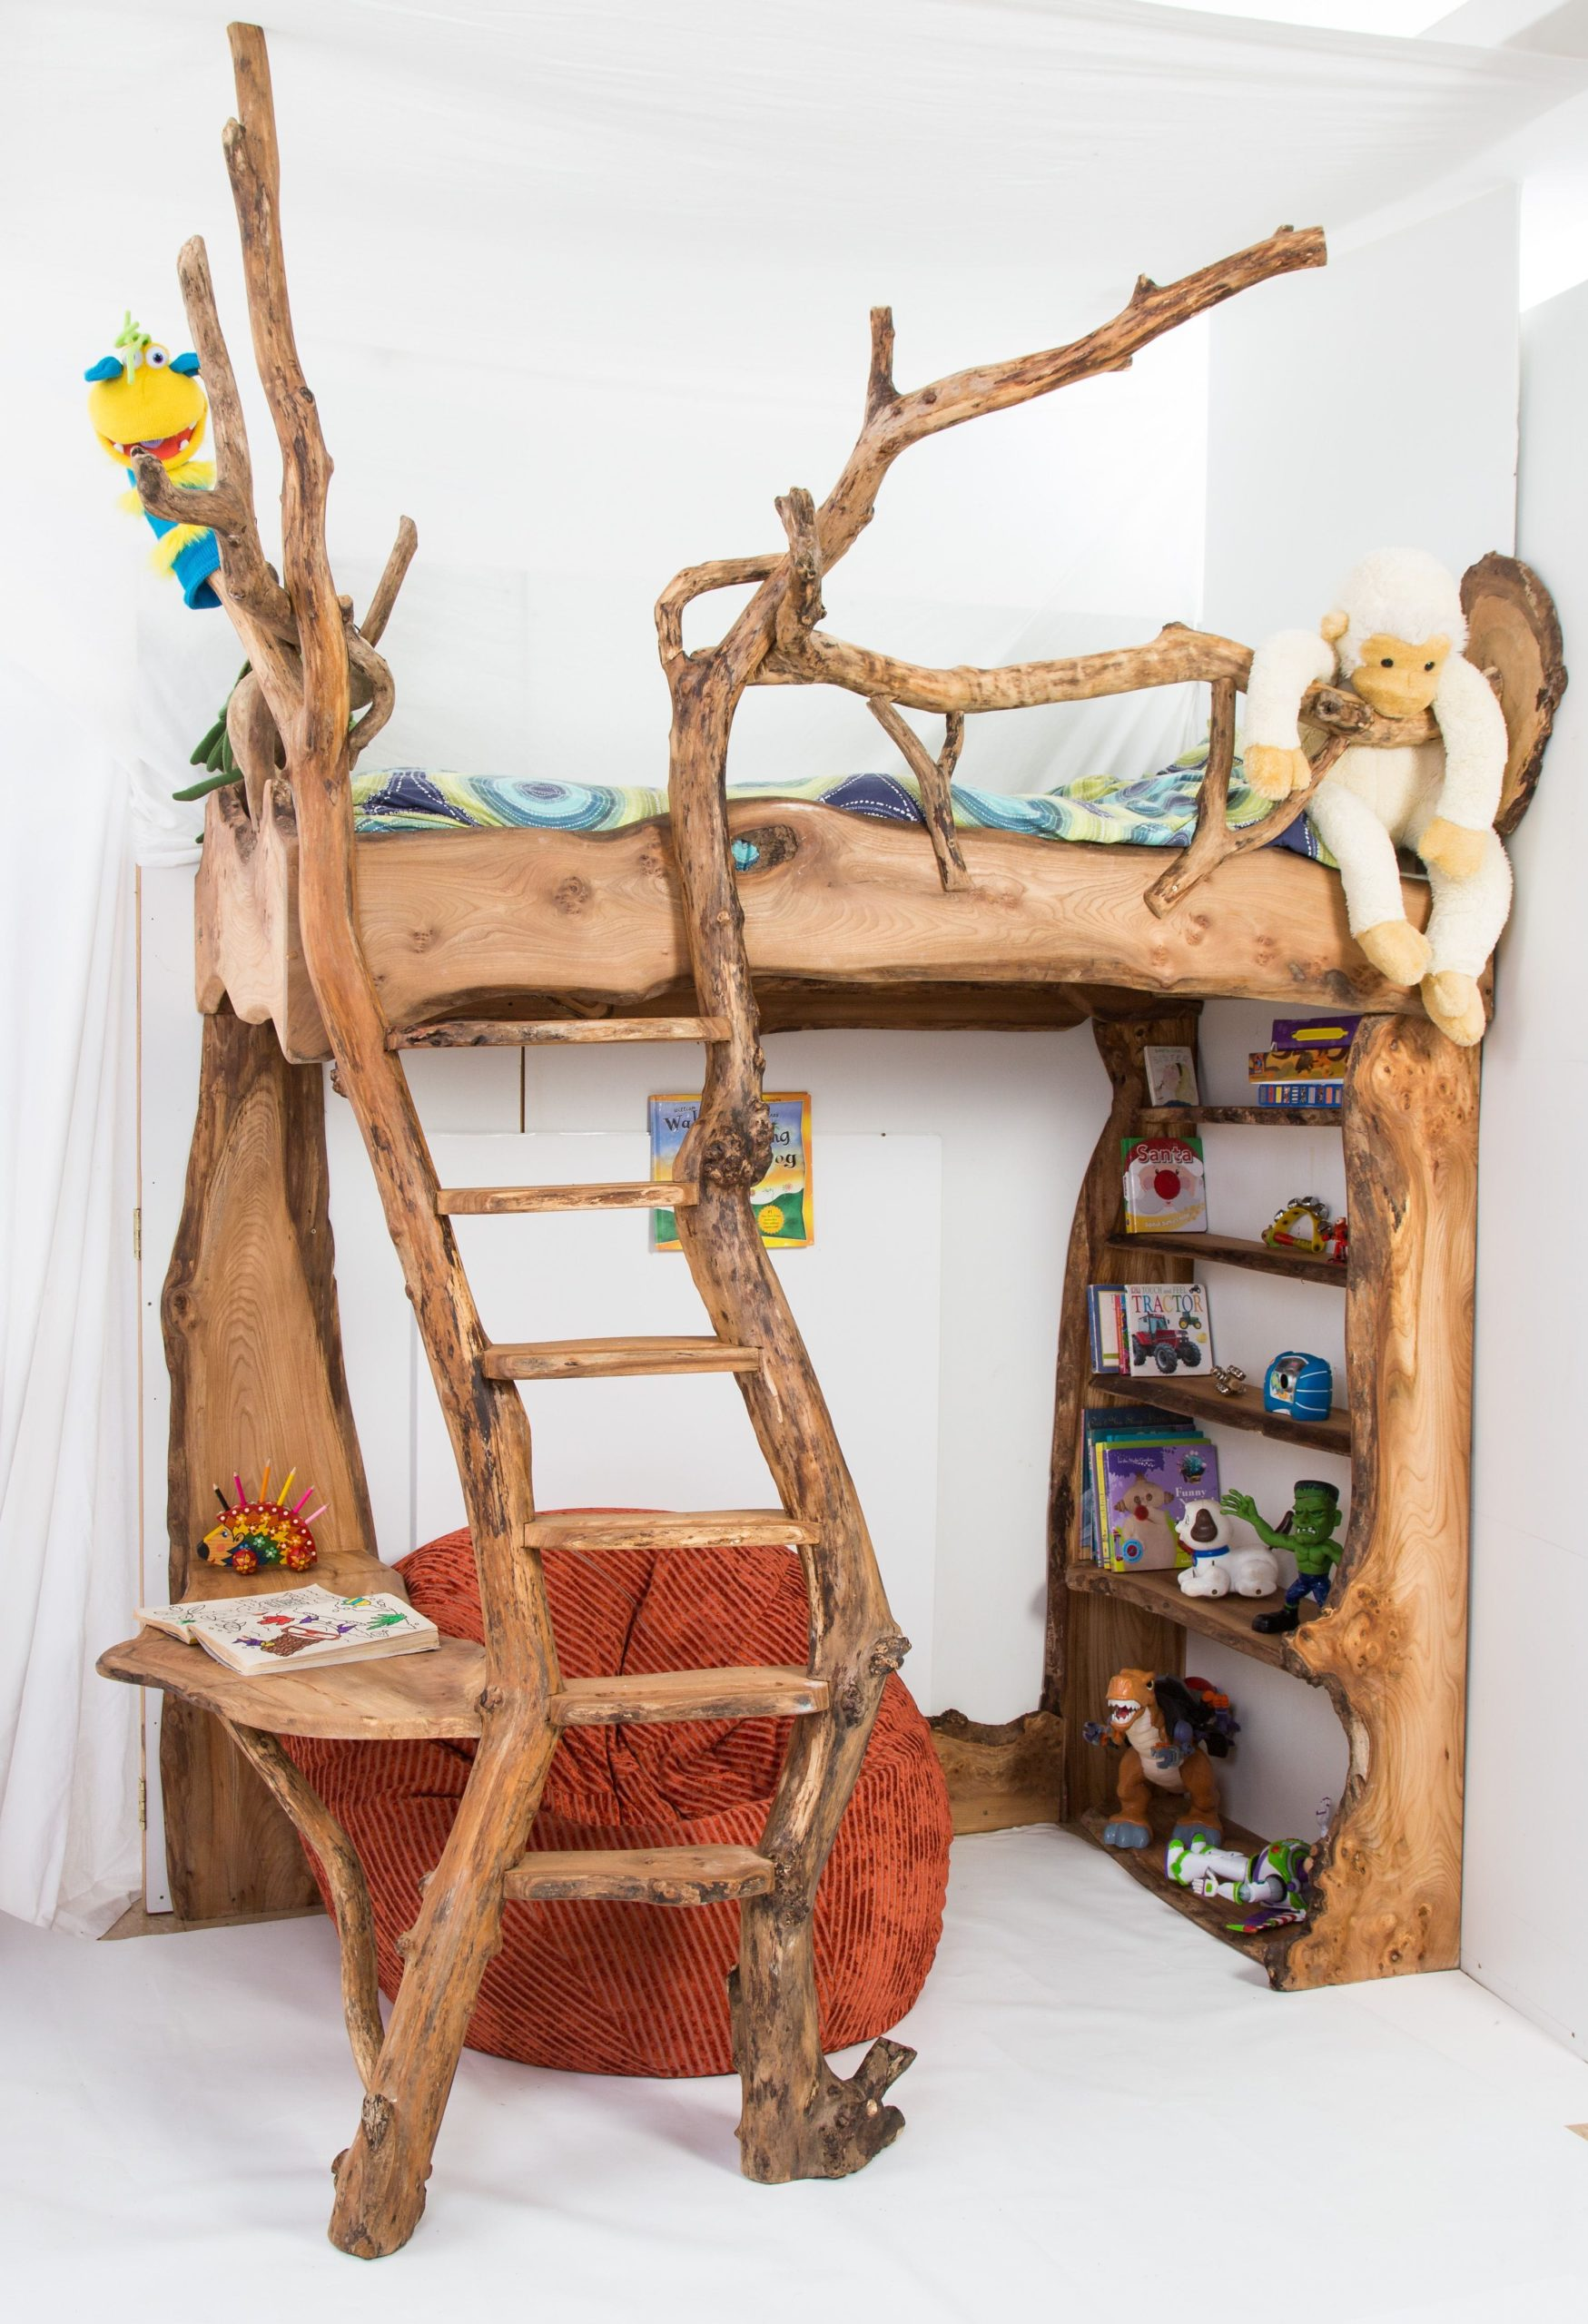 The Magical laddered Kids Tree Bed